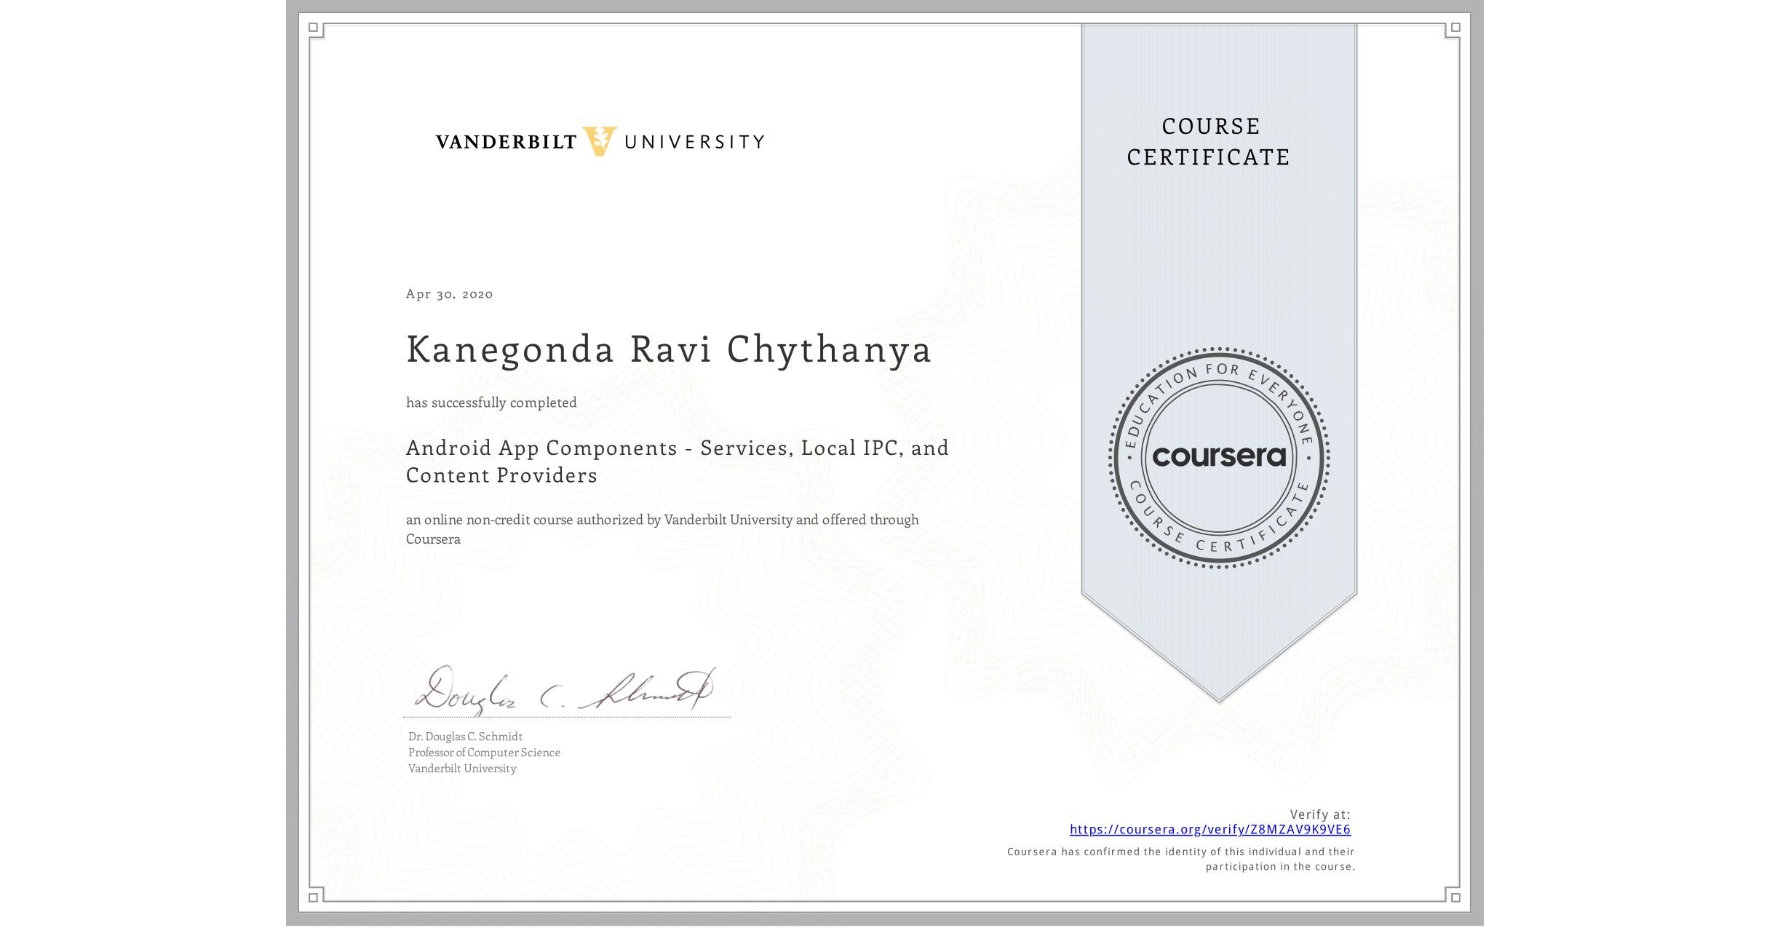 View certificate for Kanegonda Ravi Chythanya, Android App Components - Services, Local IPC, and Content Providers, an online non-credit course authorized by Vanderbilt University and offered through Coursera